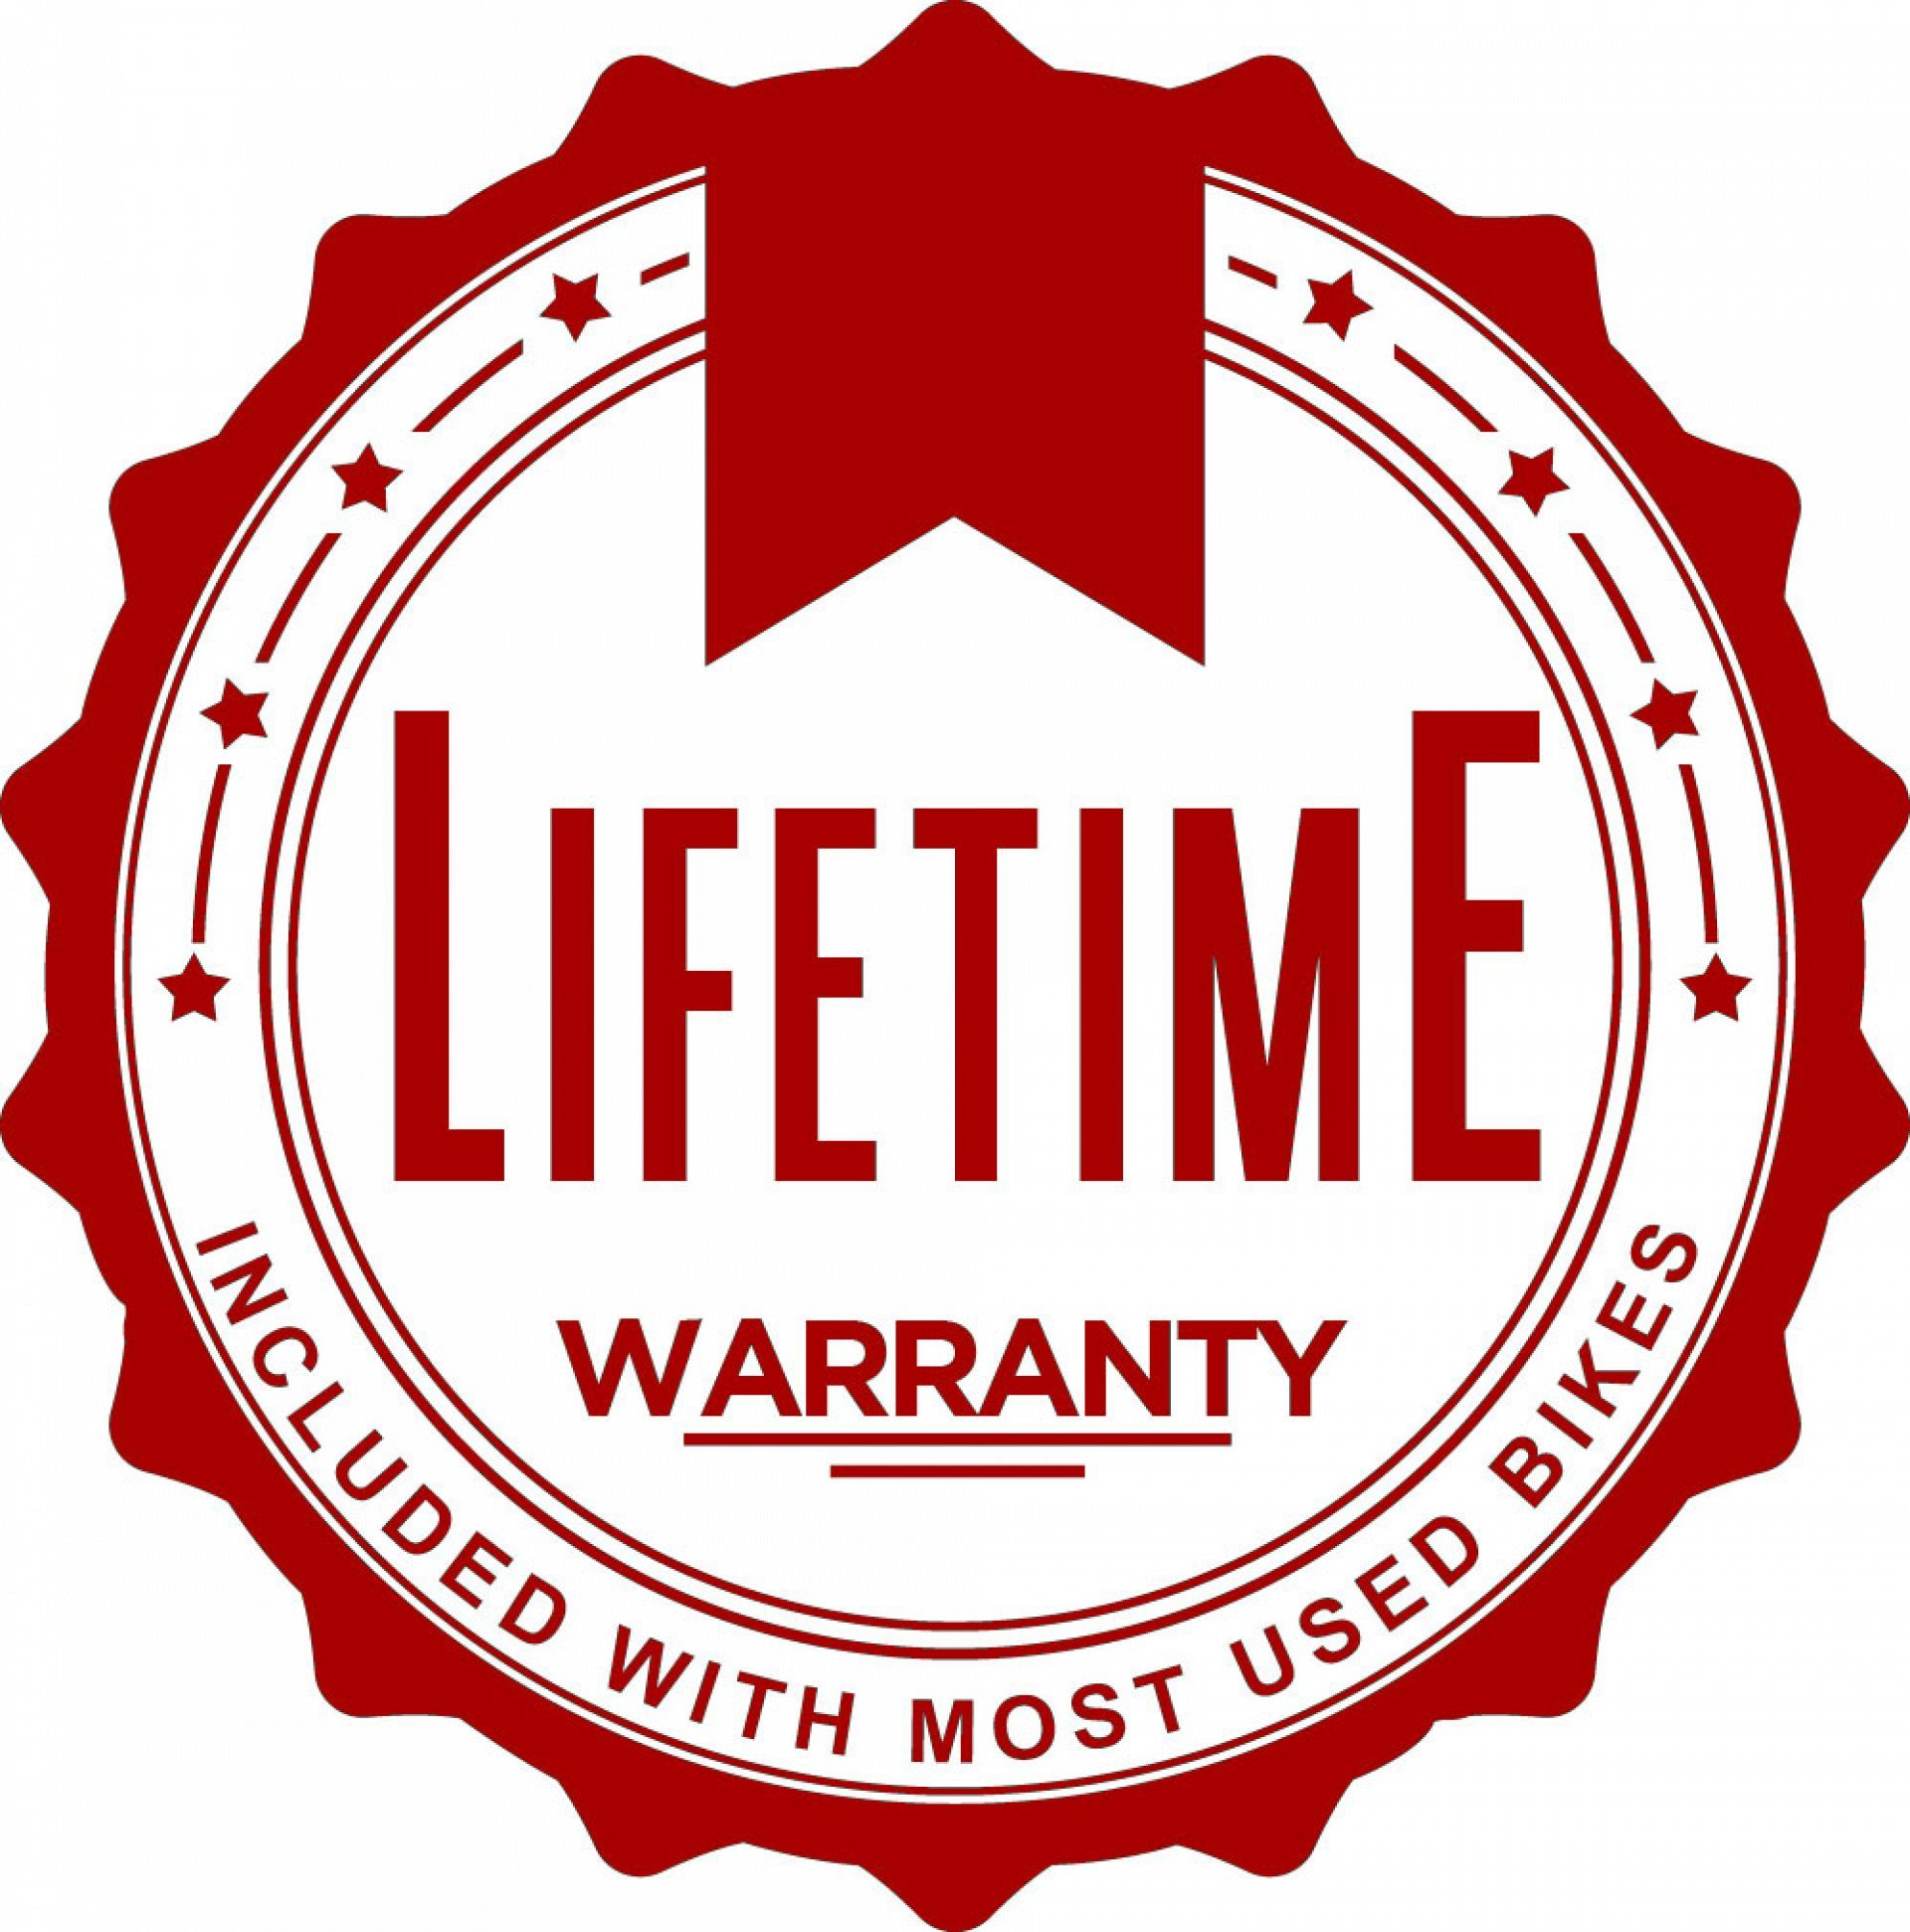 Lifetime Warranty on Used Motorcycles